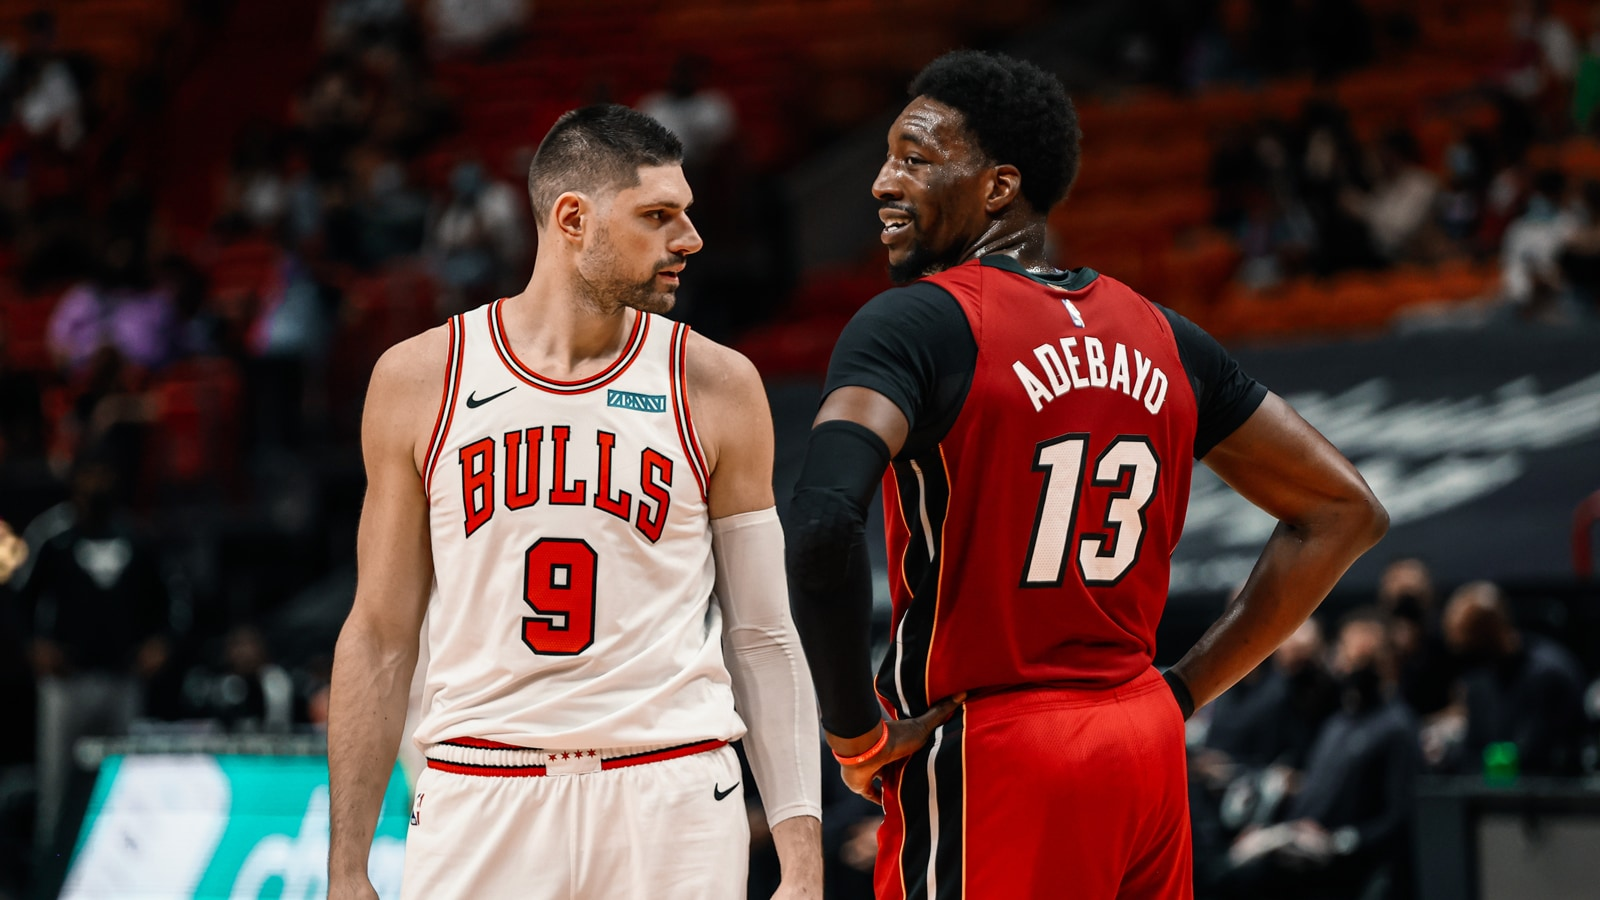 Bulls can't complete comeback, fall 106-101 to Miami | Chicago Bulls